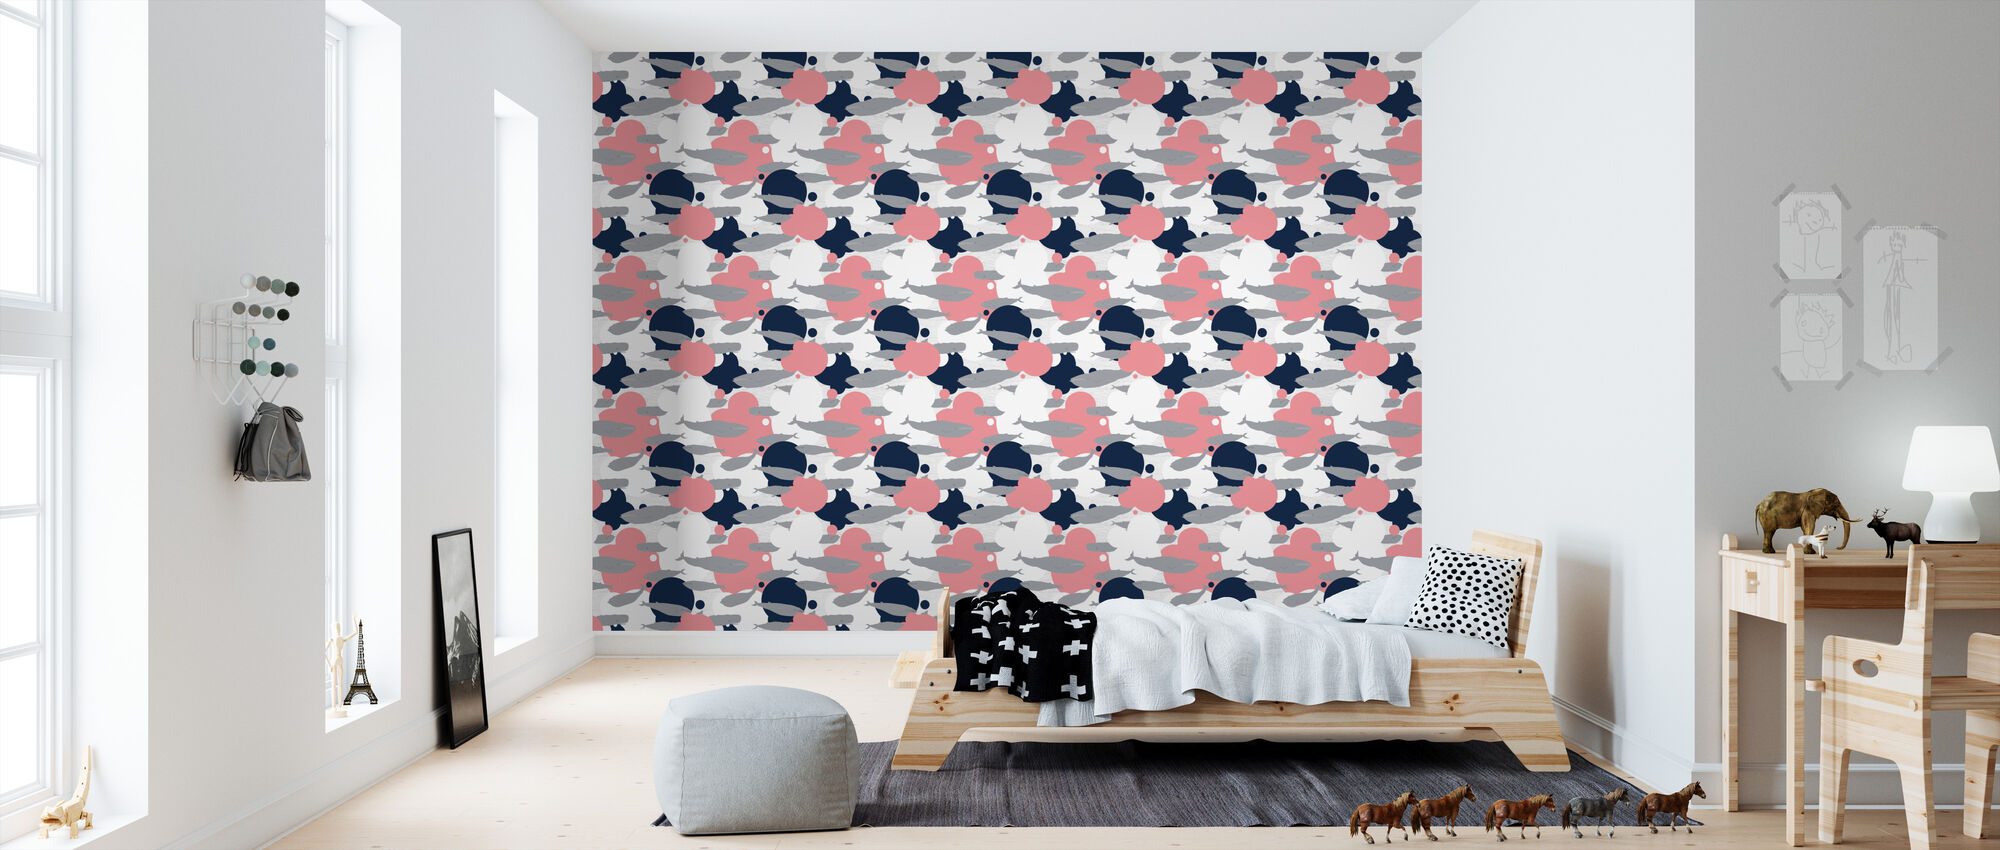 Just Another Swim - Pink - Wallpaper - Kids Room